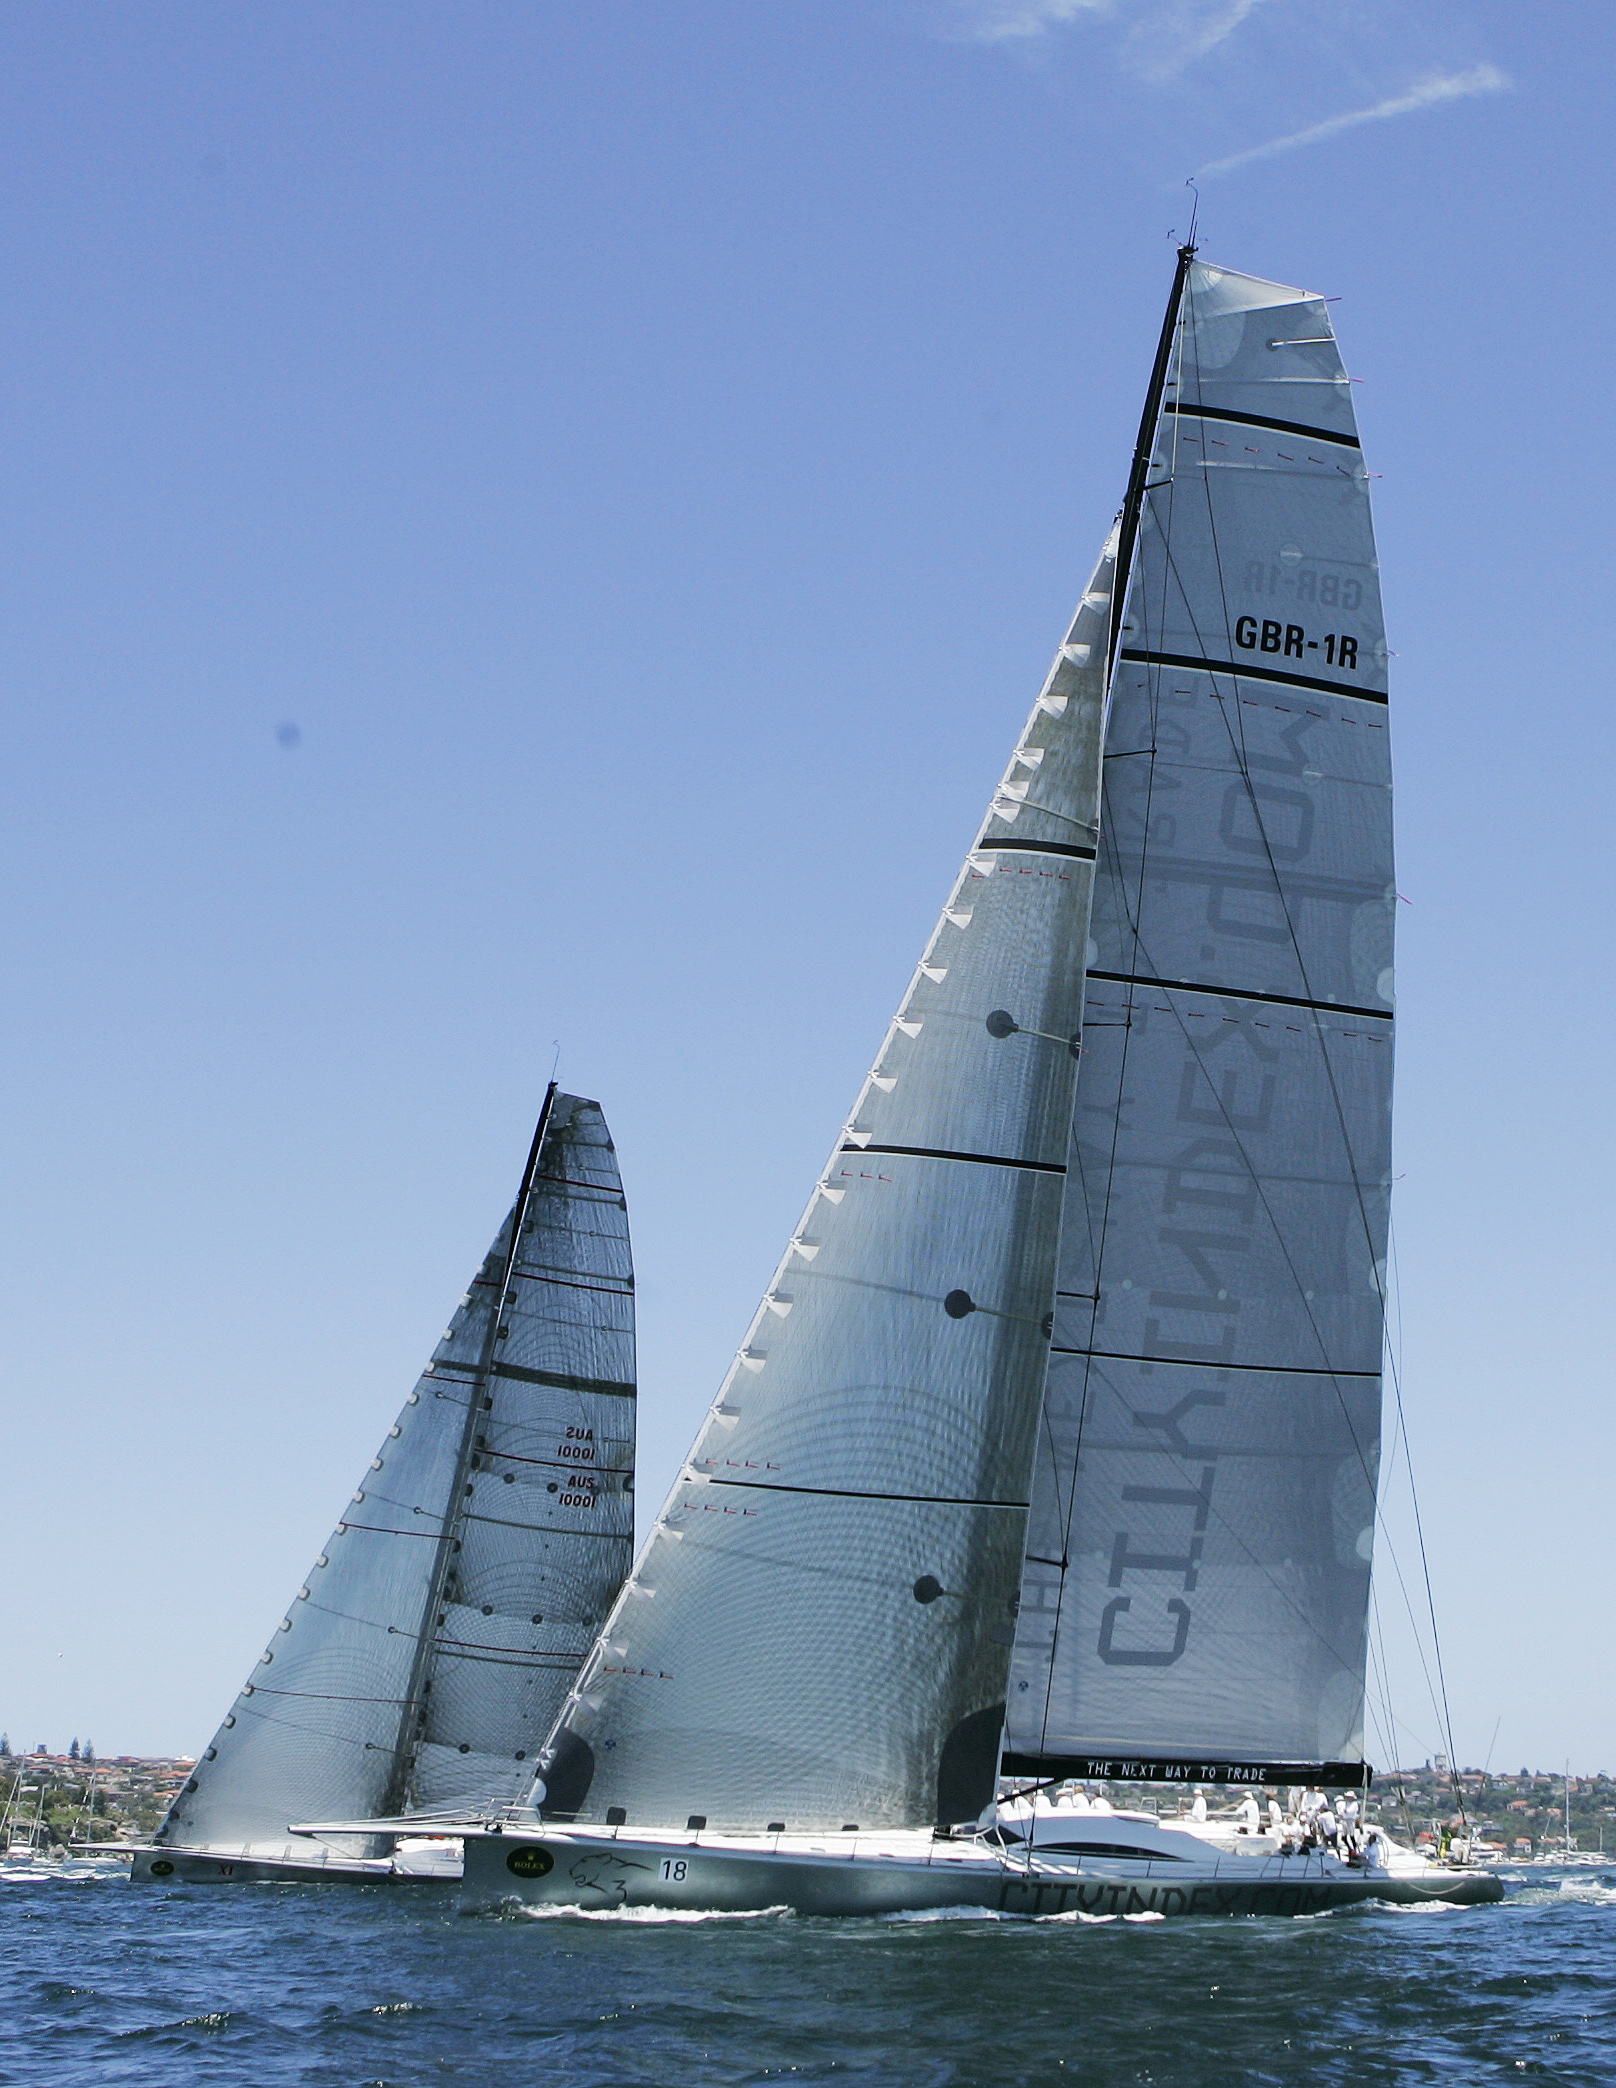 Wild Oats XI, left, leads Leopard at the start of the Sydney To Hobart yacht race in Sydney, Australia yesterday.